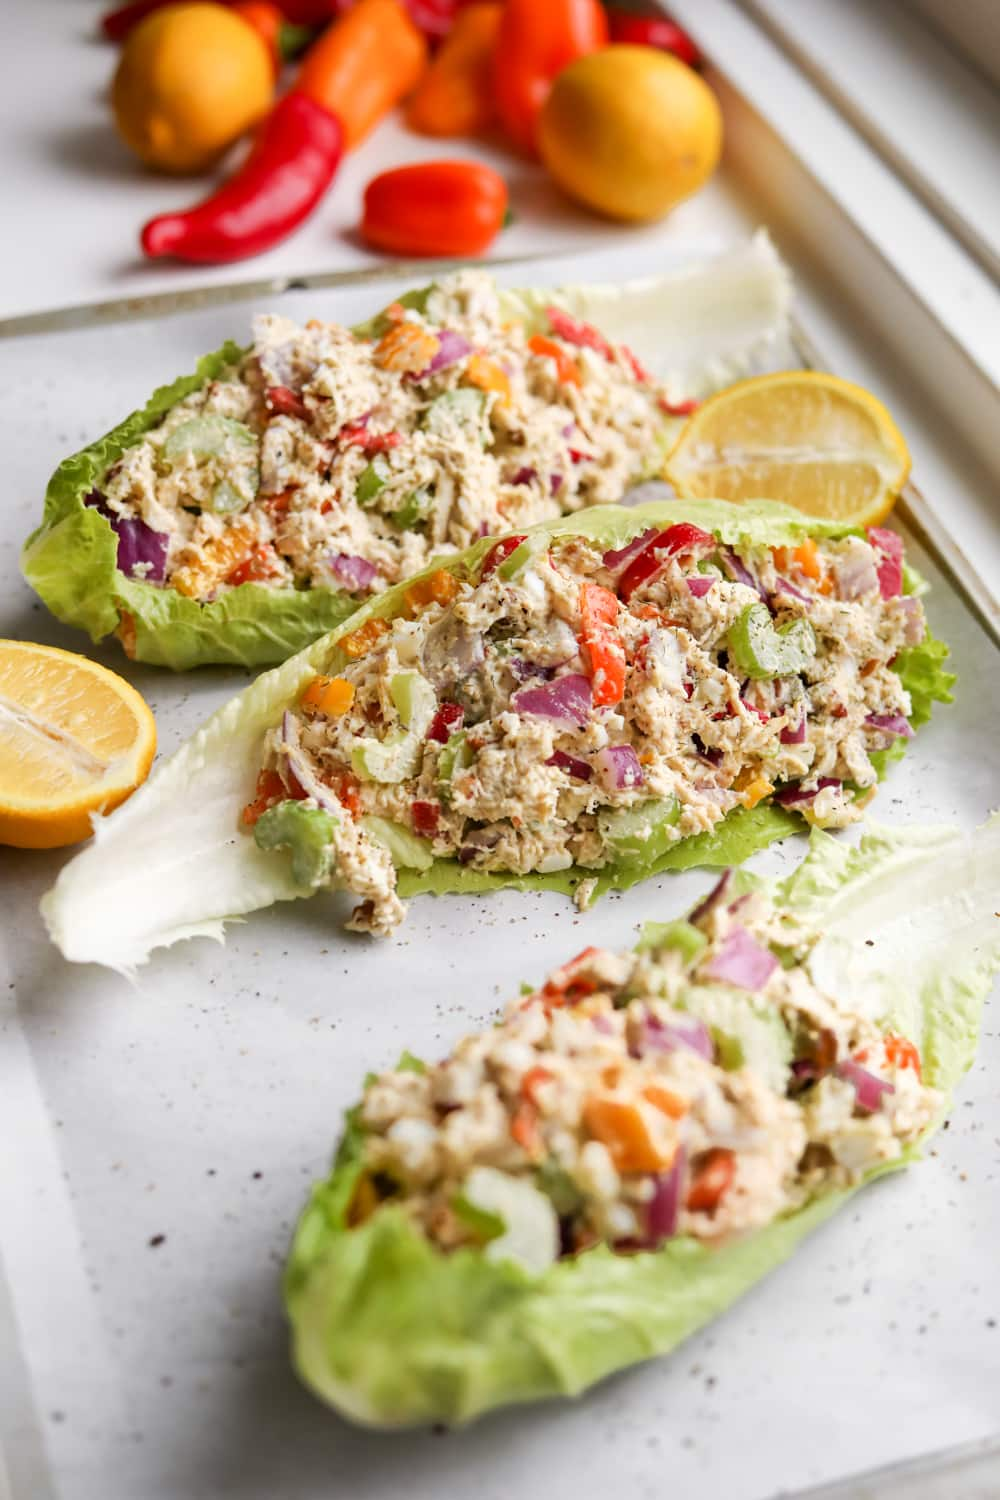 Lettuce wraps filled with chicken salad on a baking sheet.